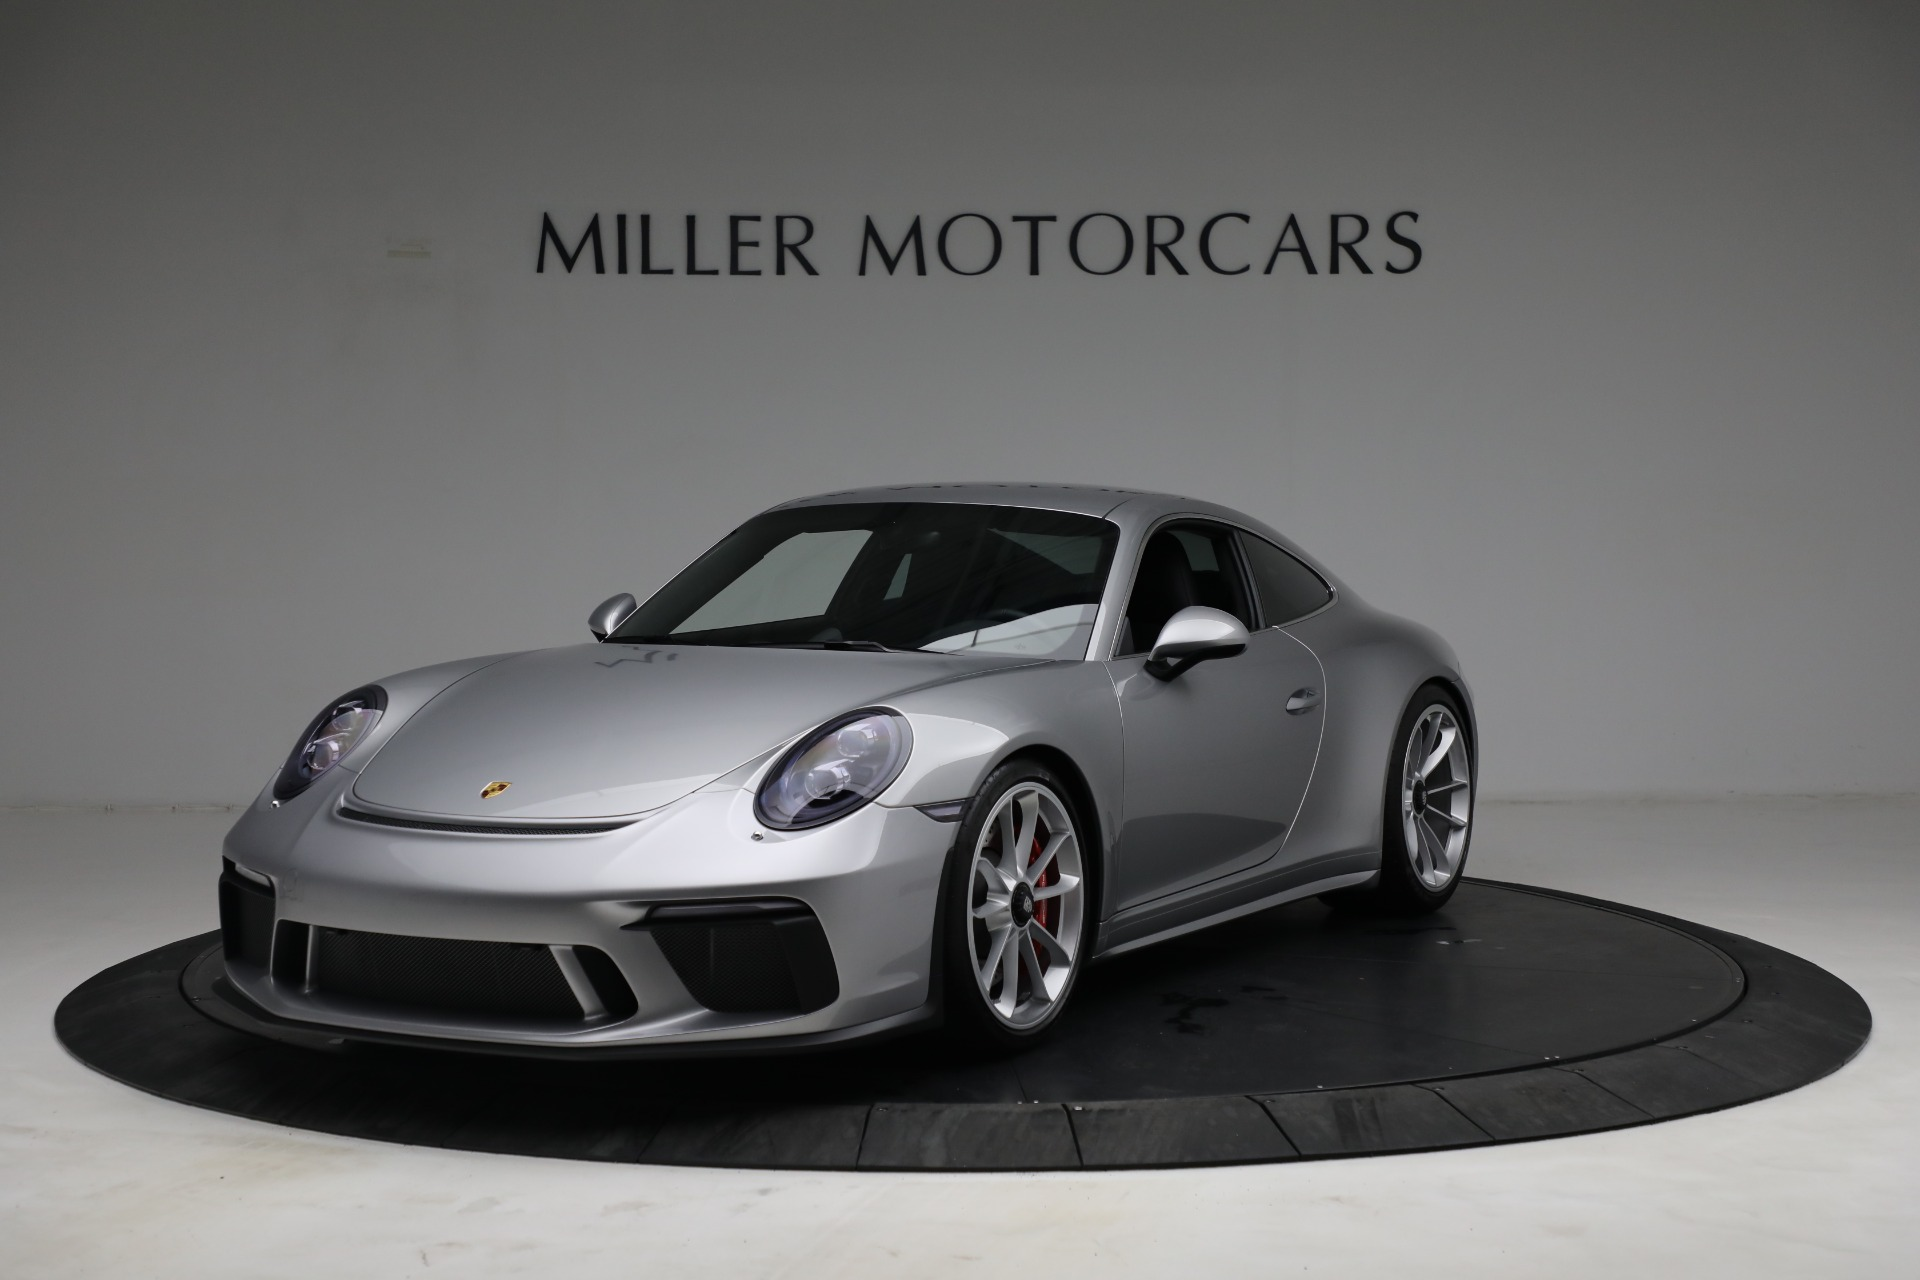 Used 2018 Porsche 911 GT3 Touring for sale $245,900 at Aston Martin of Greenwich in Greenwich CT 06830 1